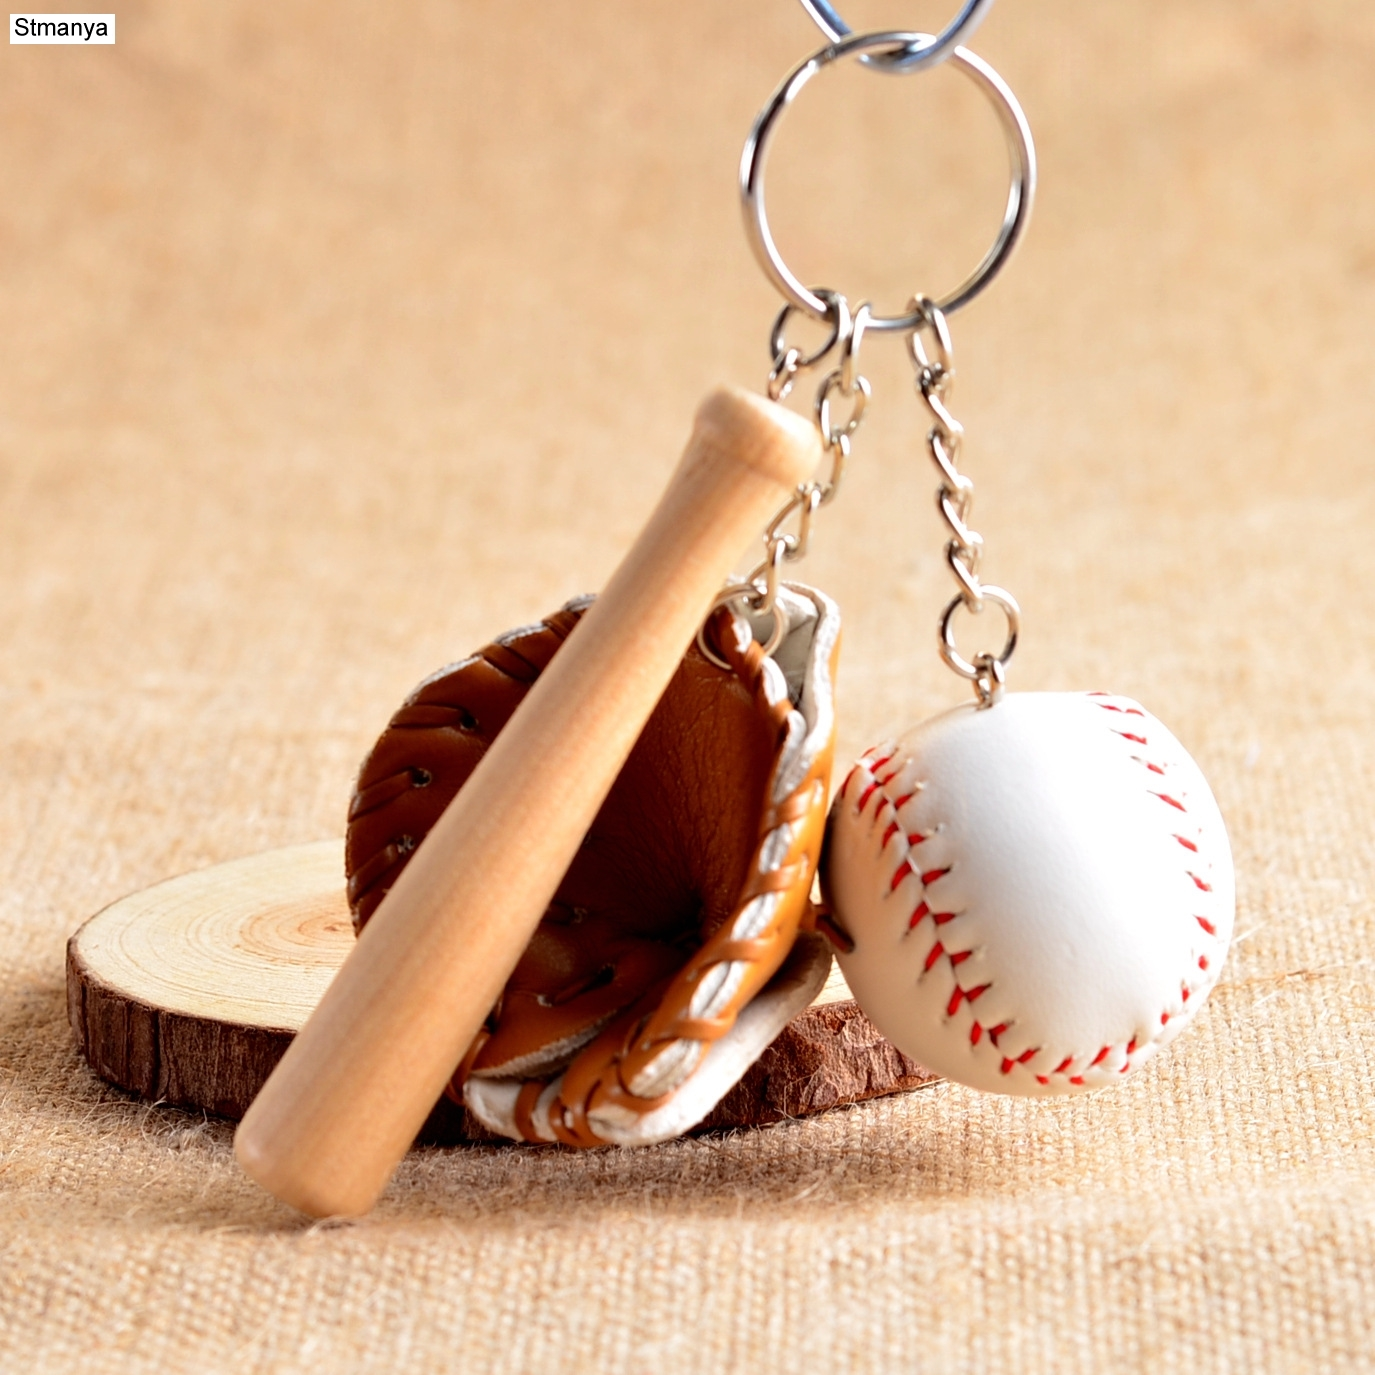 Mini Three-piece Baseball Glove Wooden Bat Keychain Sports Car Key Chain Key Ring Gift For Man Women Wholesale 1-17168